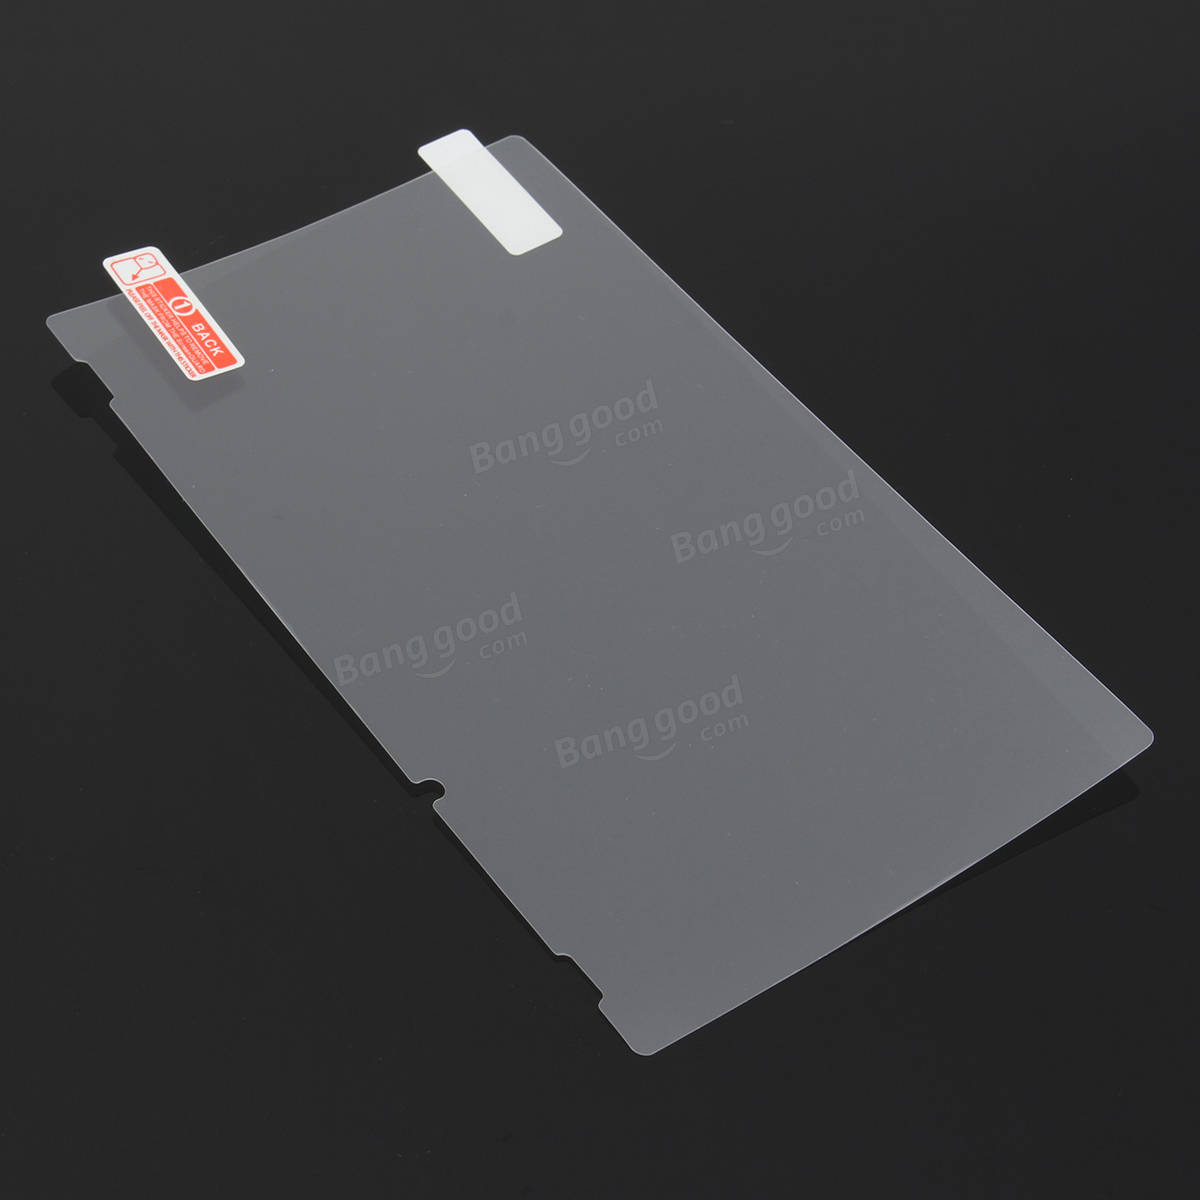 Anti-Fingerprint HD Clear Screen Protector Cover Film Extra Sensitive Touch Skin For Nintend Switch